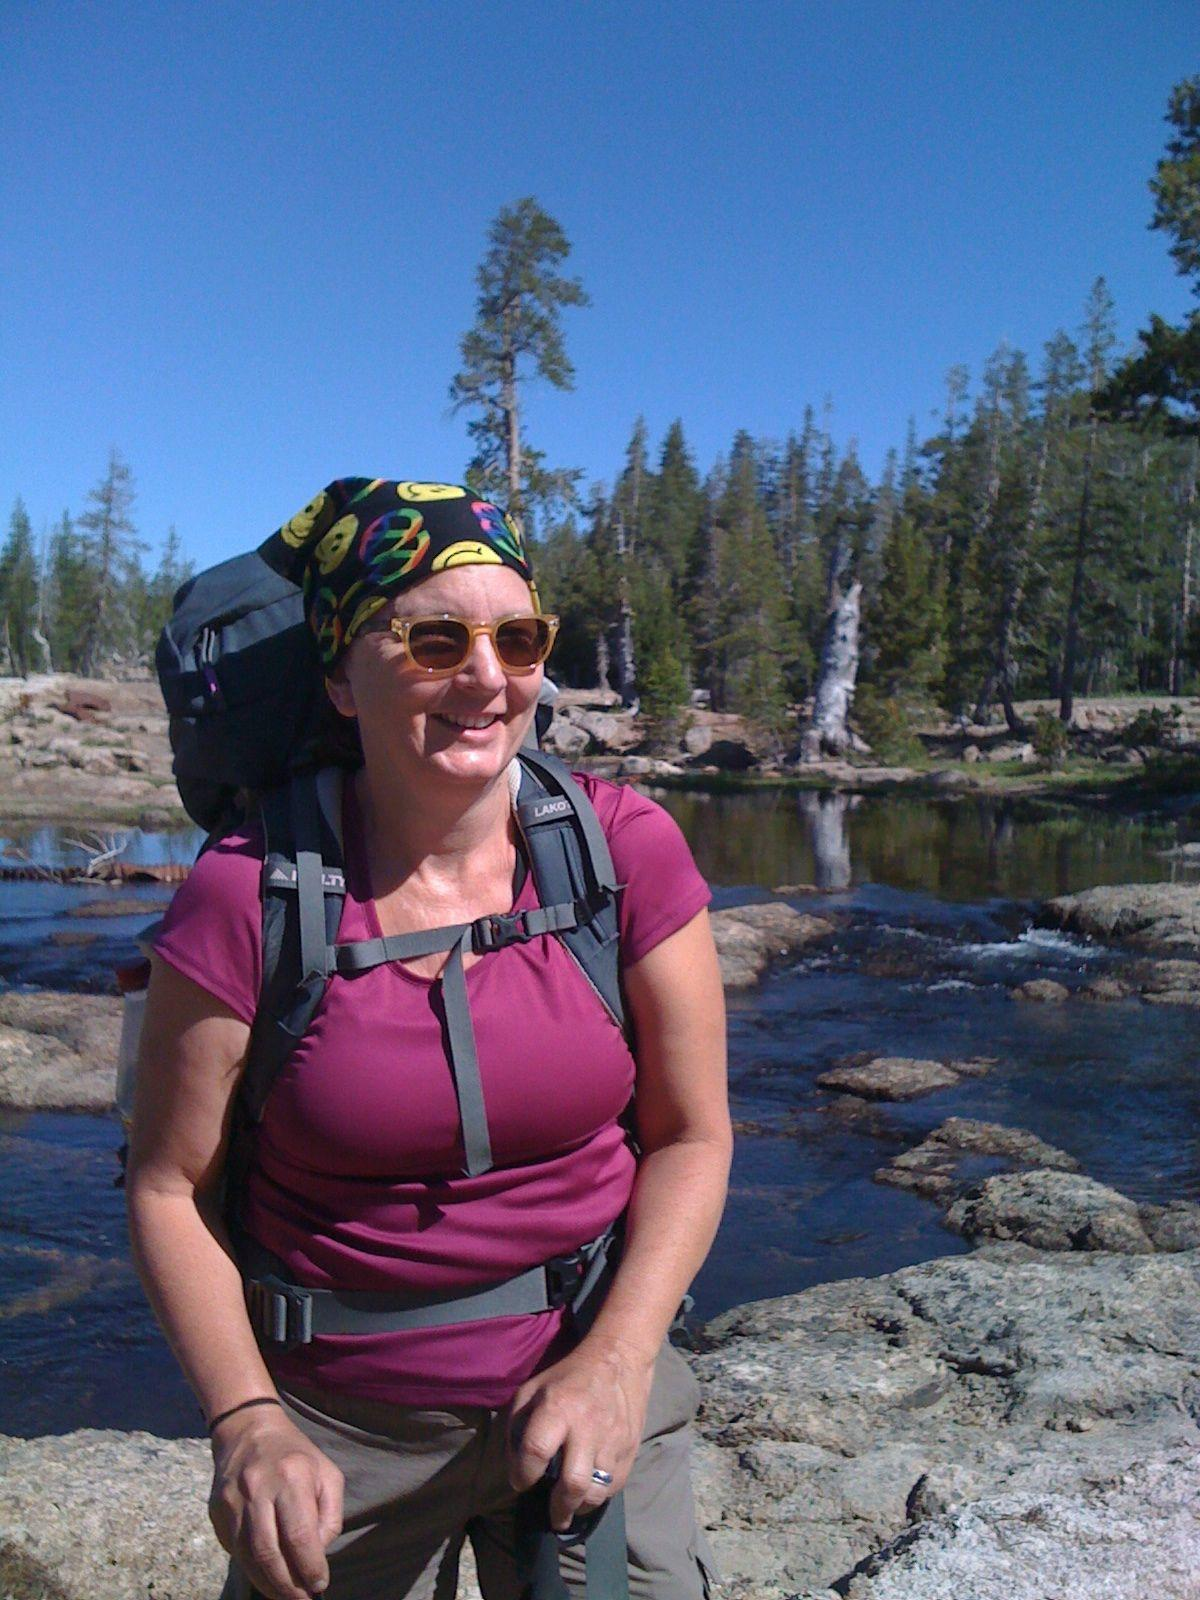 single women in vallecito Livability explores what makes small-to-medium sized cities great places to live through proprietary research studies, engaging articles and original photography.